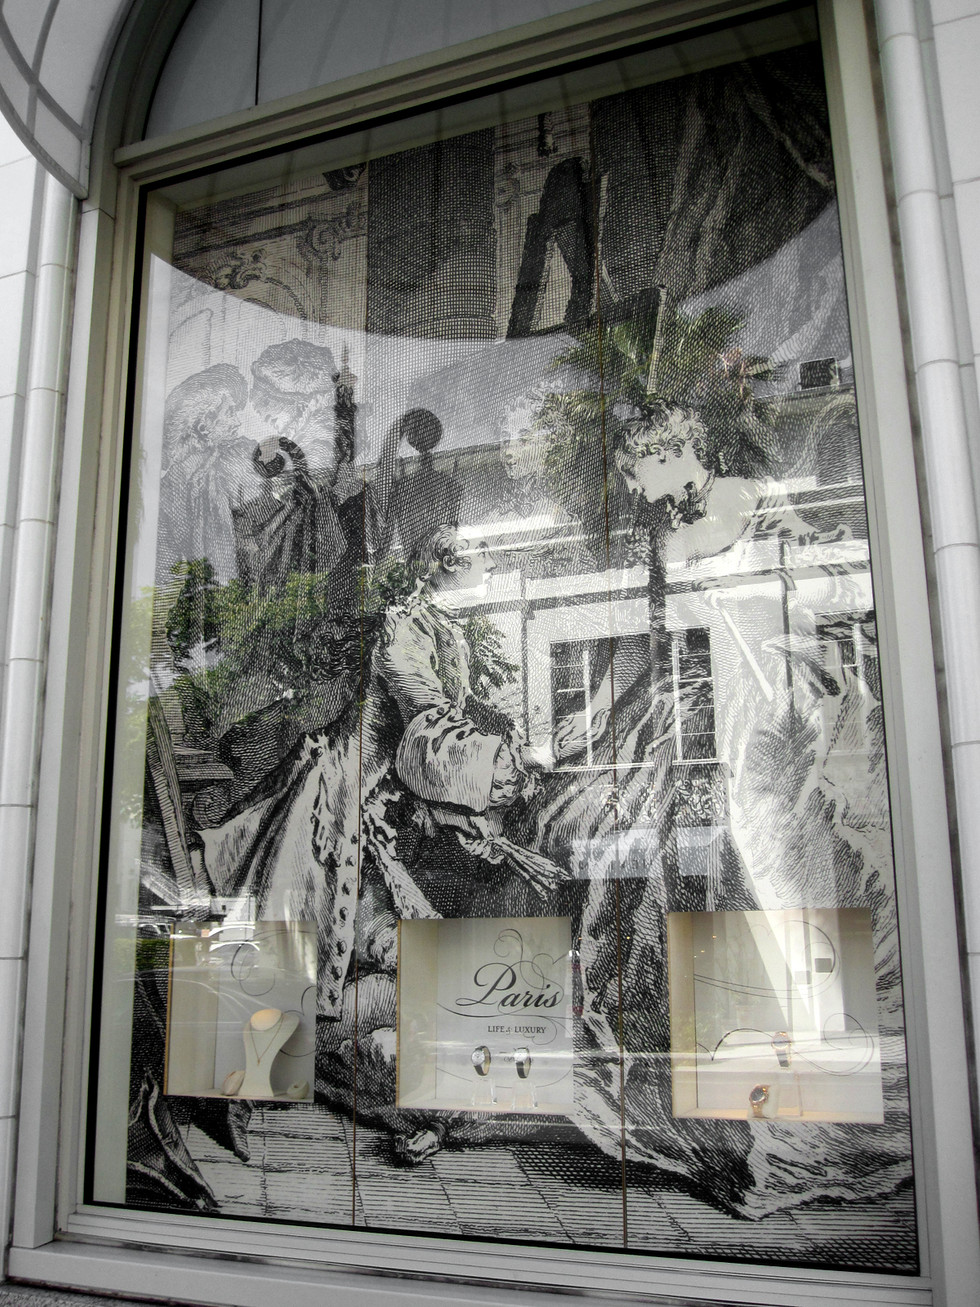 Designs for the display windows for the Breguet flagship store in Beverly Hills used the same suite of historical prints and featured the exhibition graphic identity.